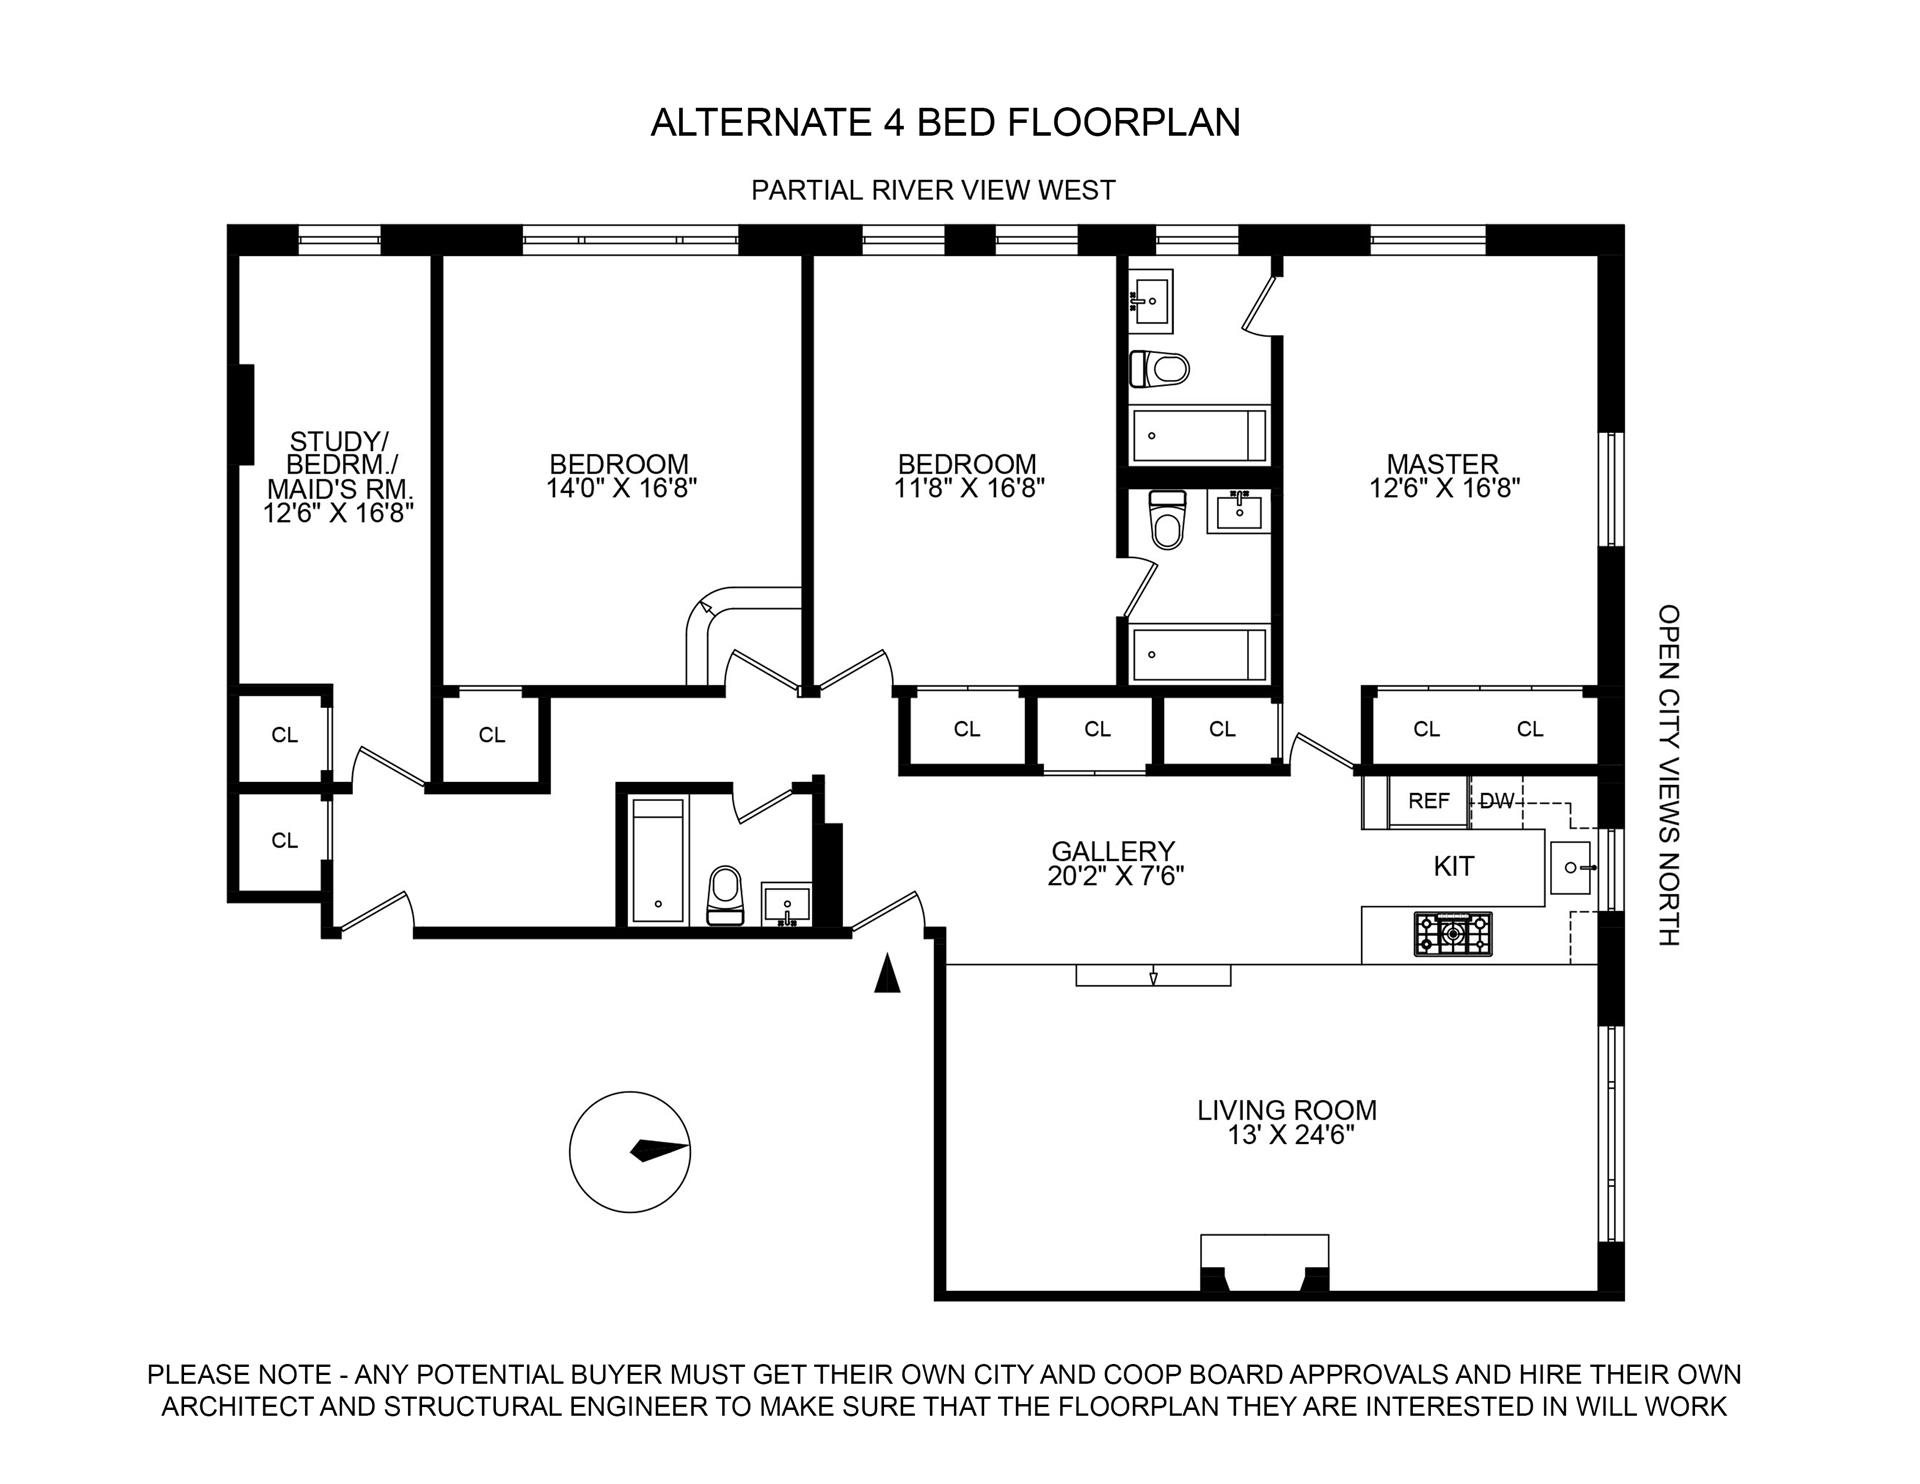 Floor plan of 336 West End Avenue, 16BC - Upper West Side, New York